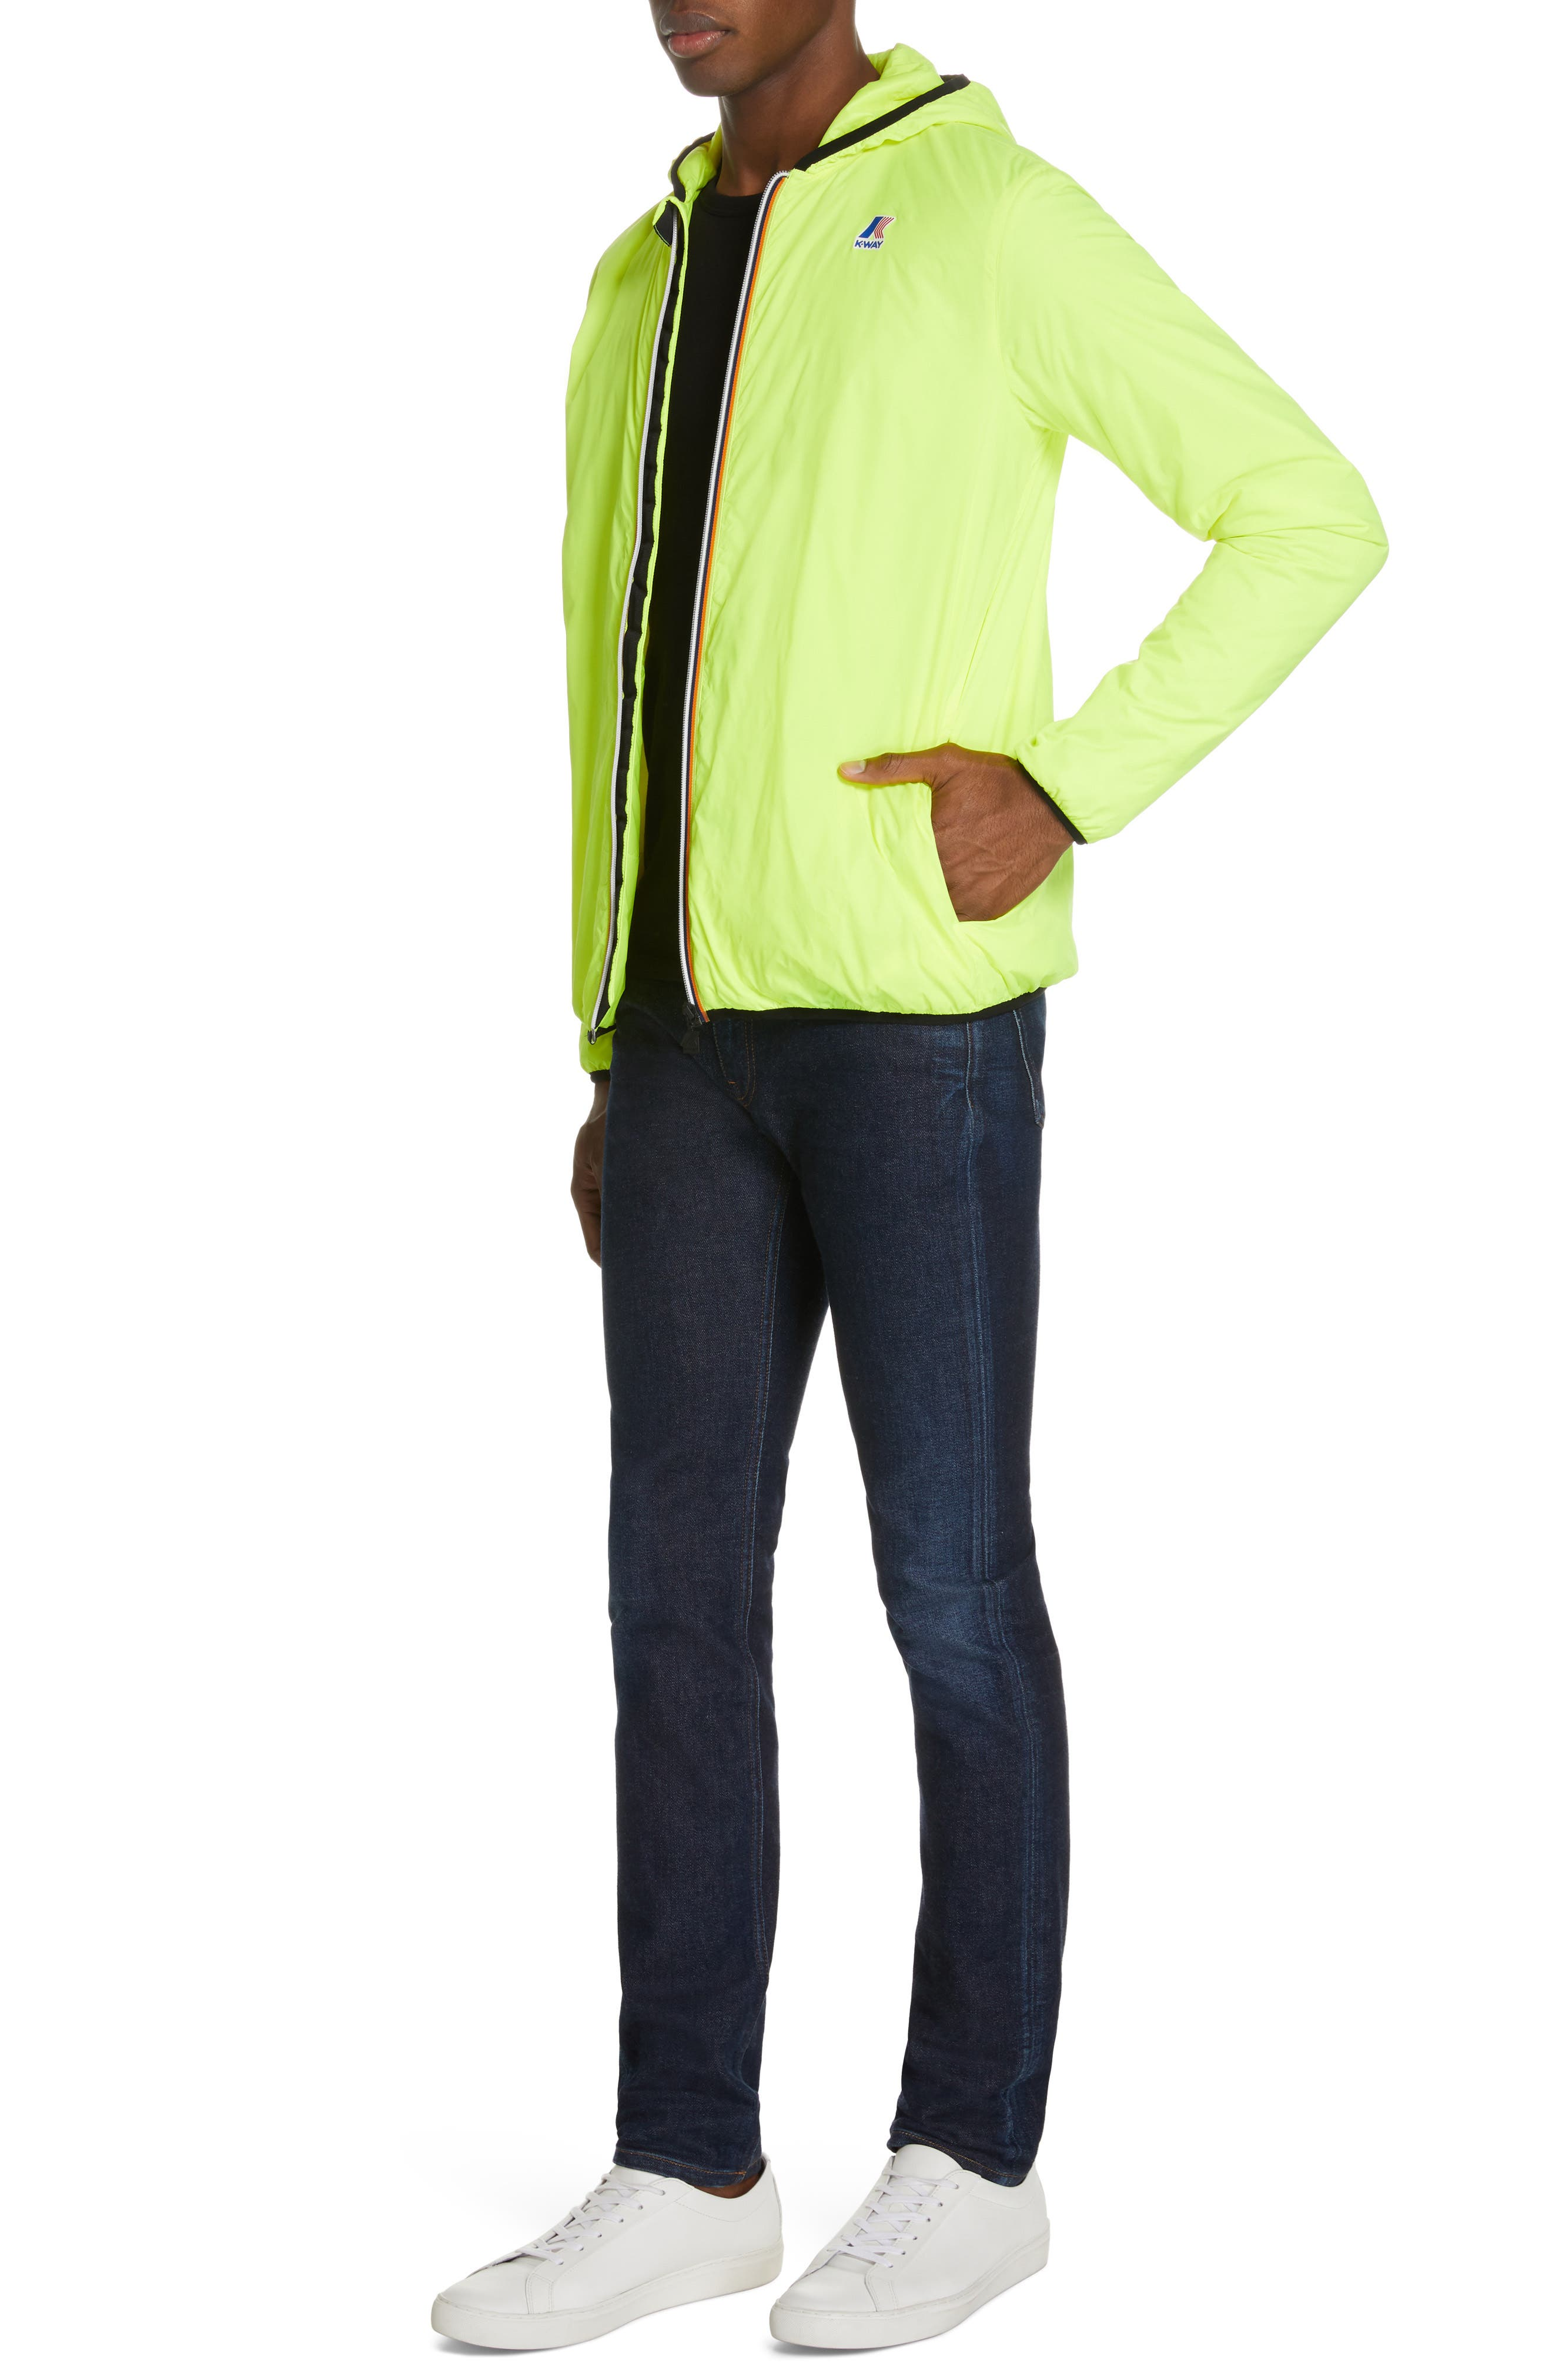 Le Vrai 3.0 Claude Light Warm Water Resistant Hooded Windbreaker,                             Alternate thumbnail 4, color,                             YELLOW FLUO